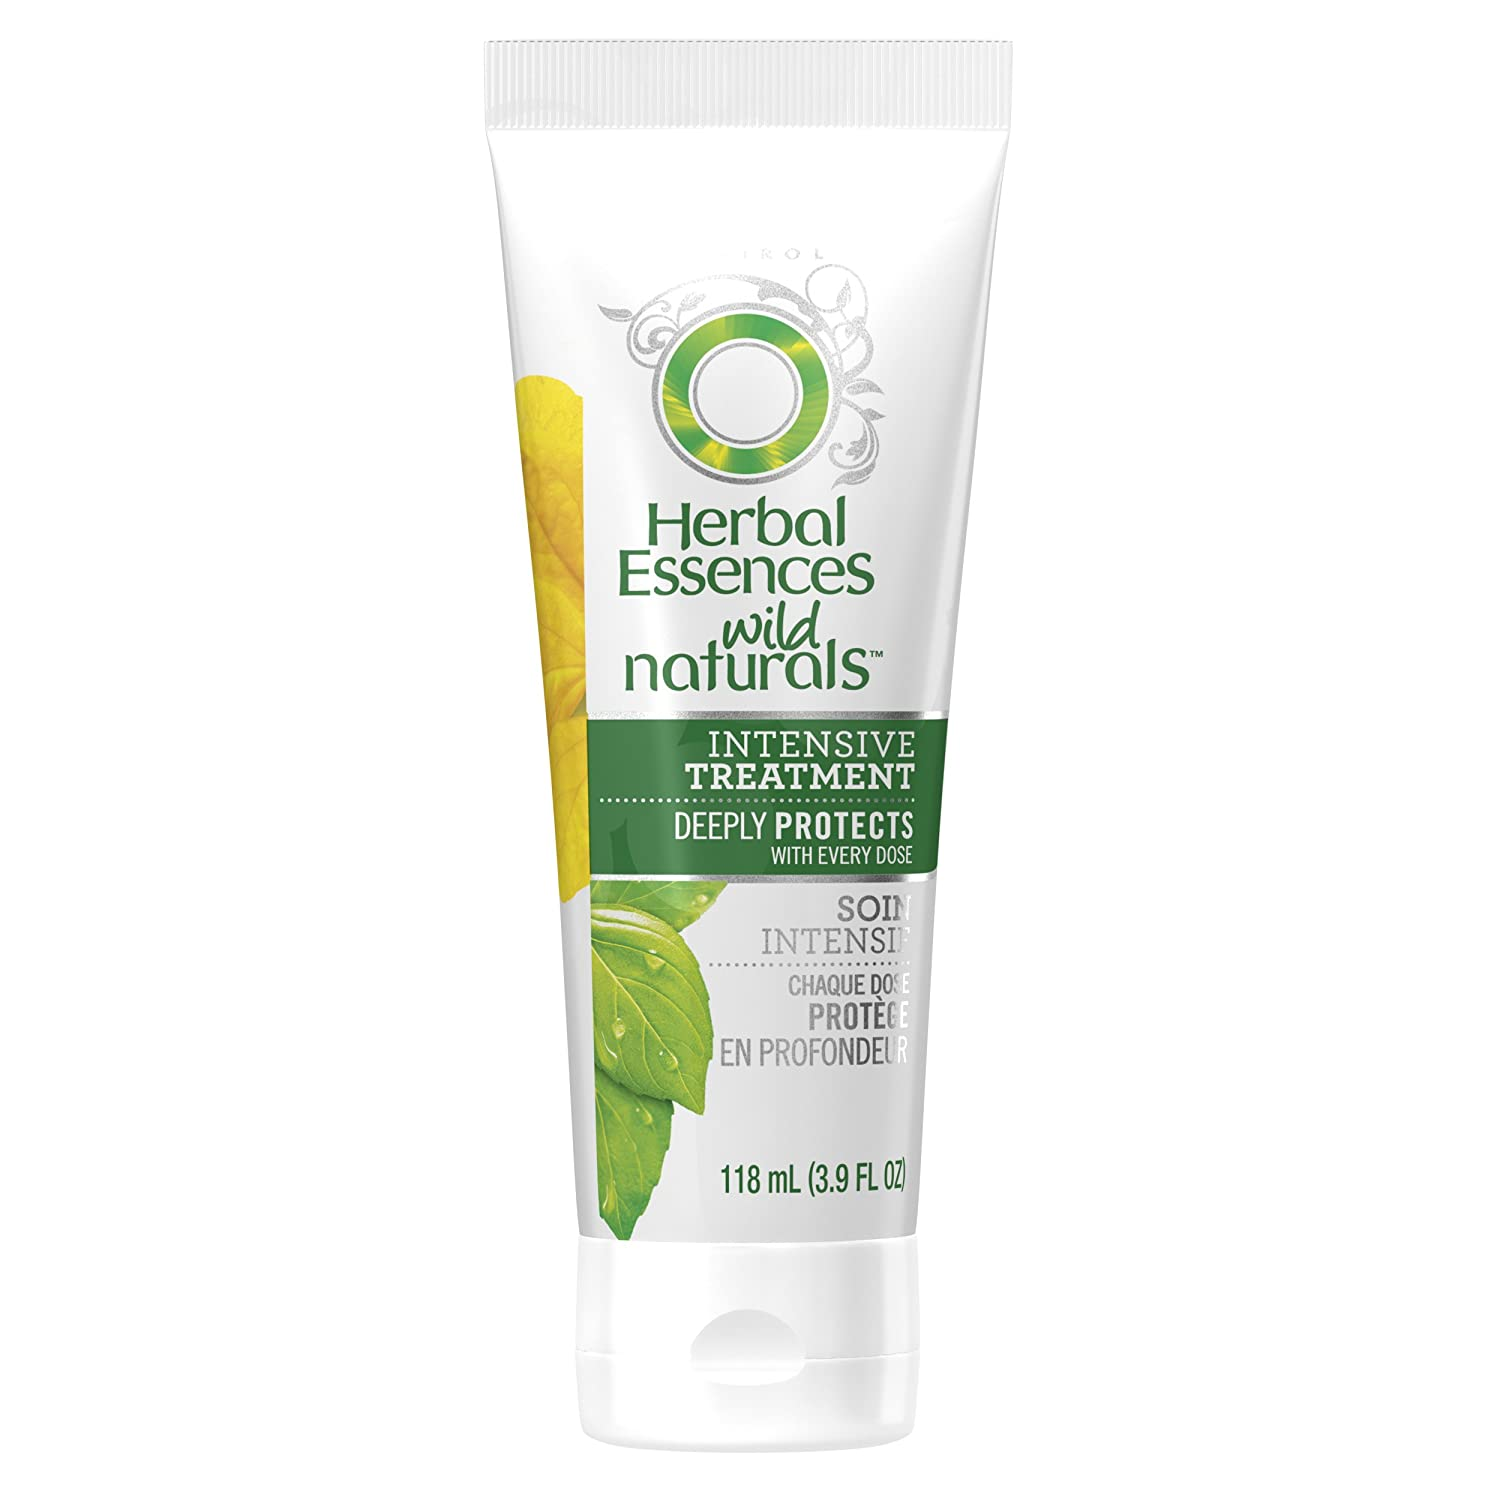 Herbal Essences Wild Naturals Intensive Treatment, 118-Milliliter- Packaging May Vary